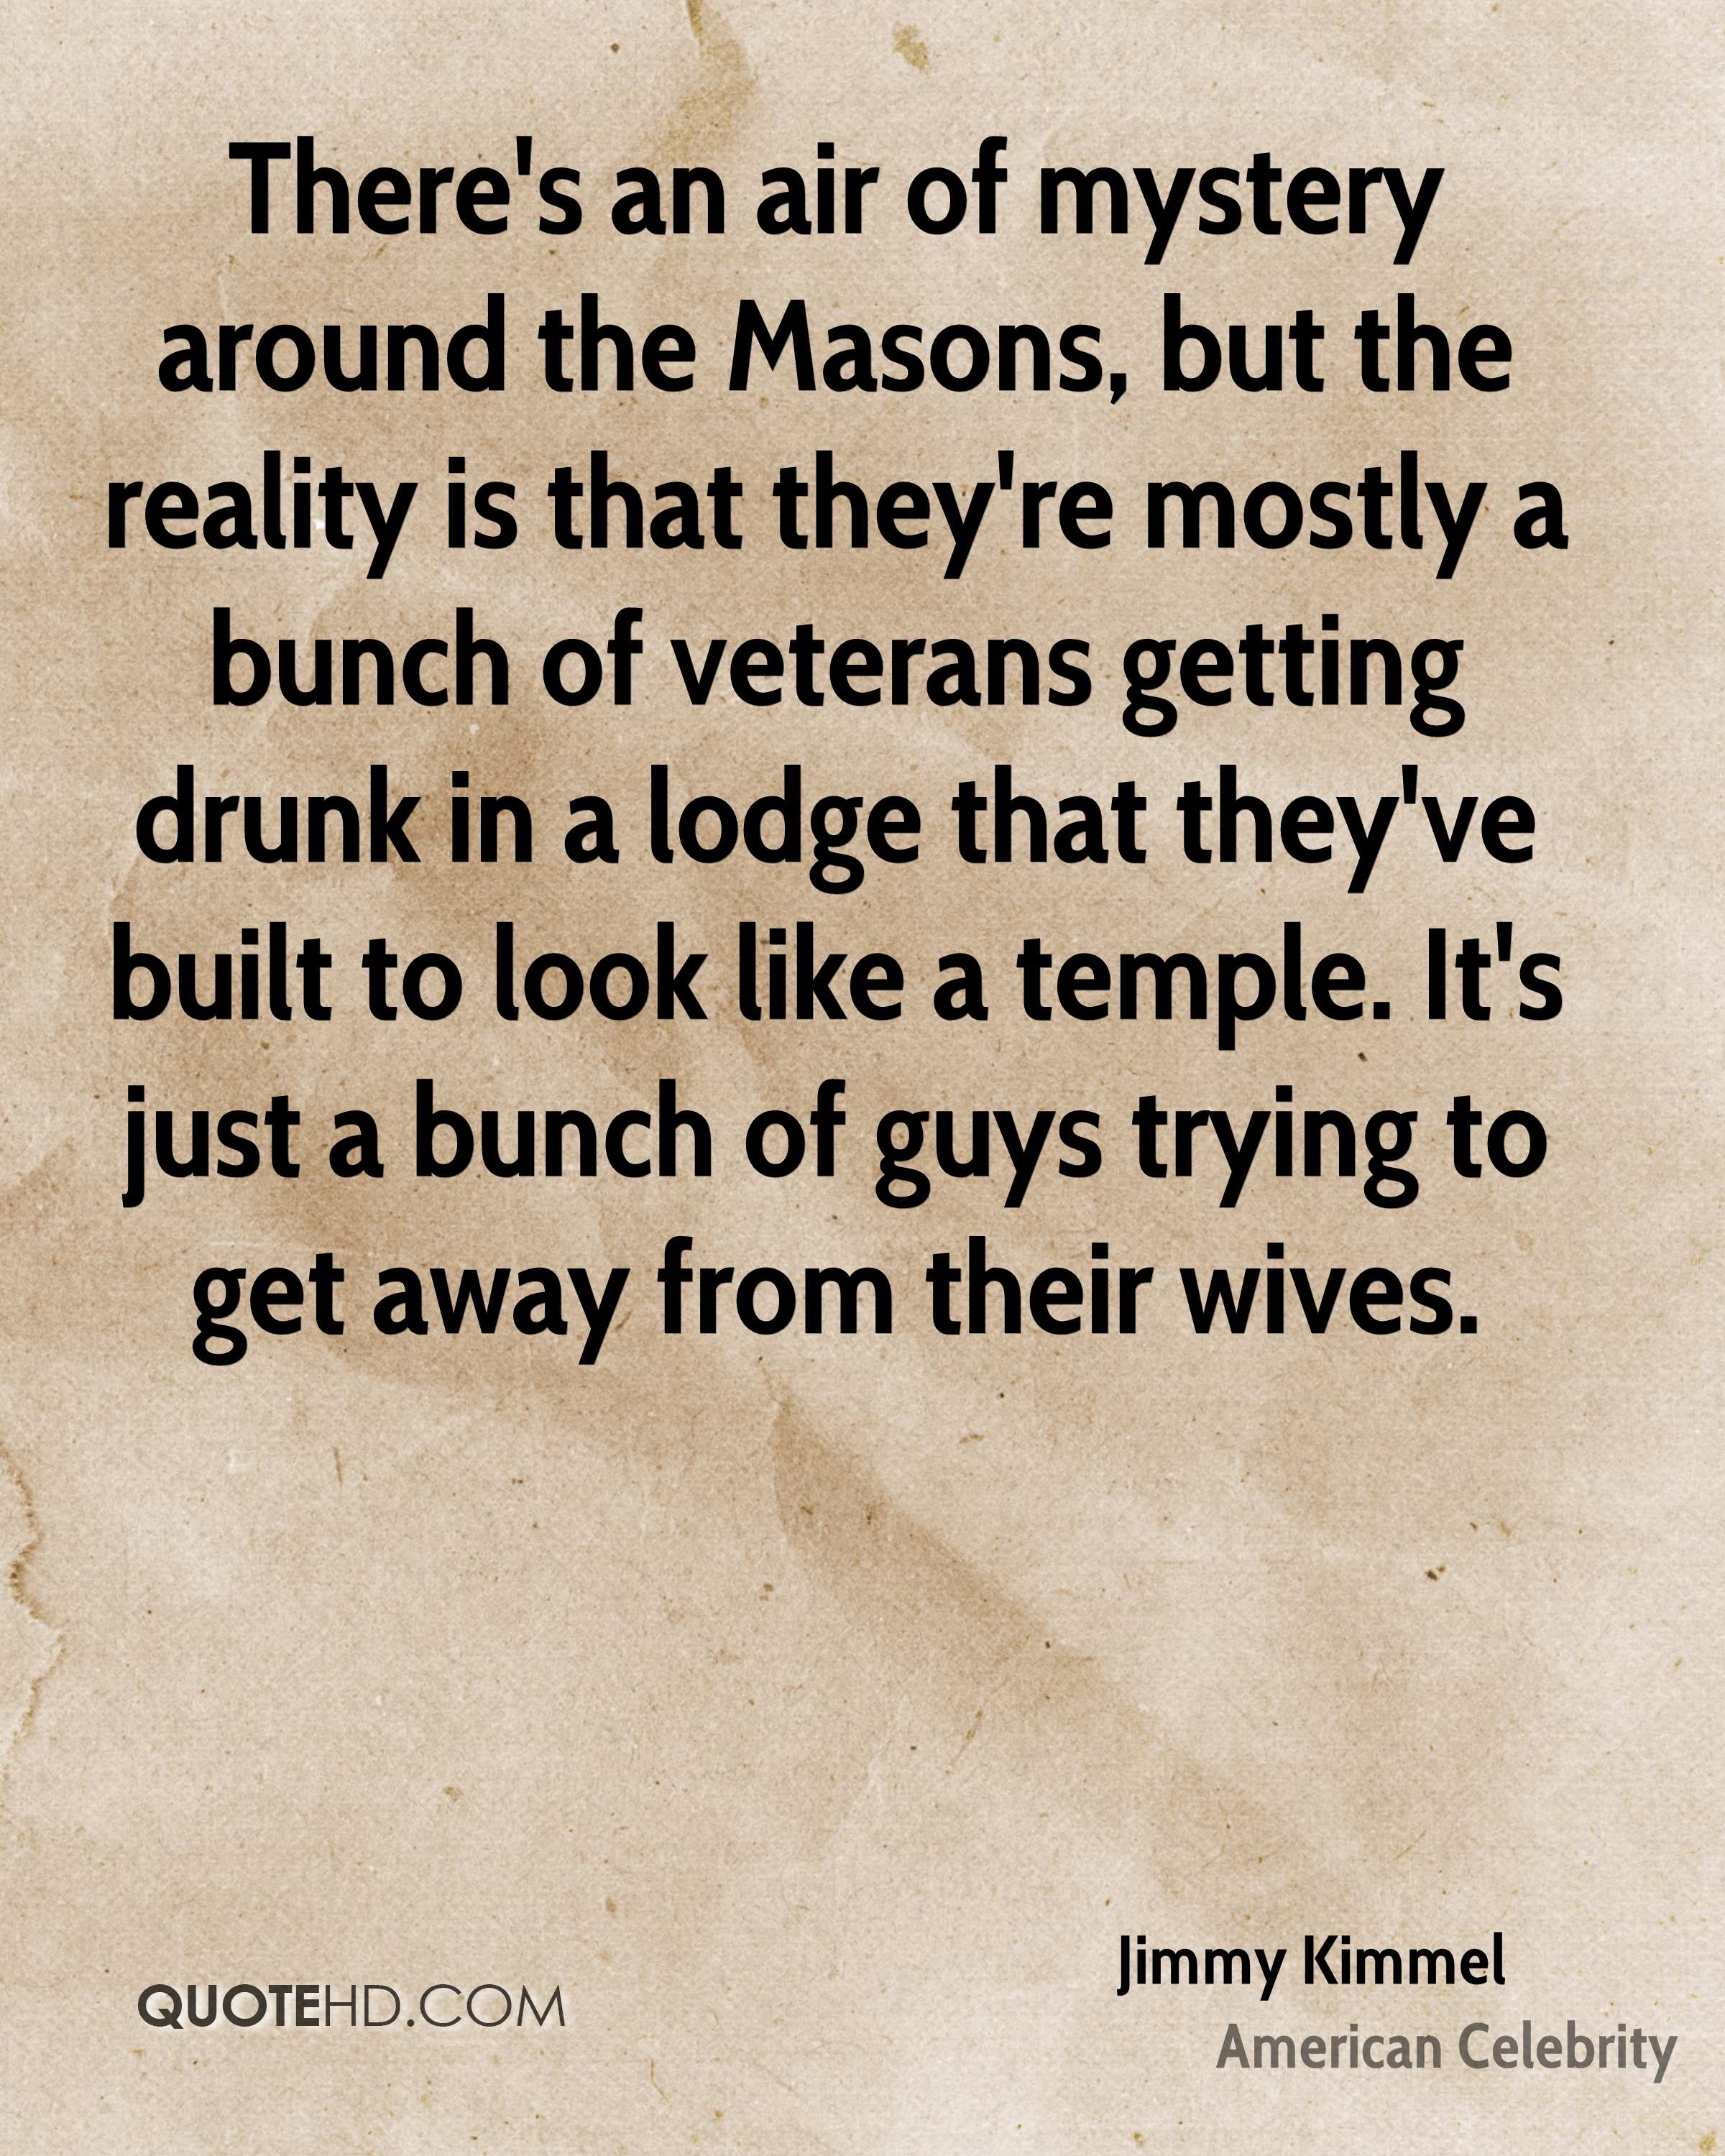 There's an air of mystery around the Masons, but the reality is that they're mostly a bunch of veterans getting drunk in a lodge that they've built to look like a temple. It's just a bunch of guys trying to get away from their wives.